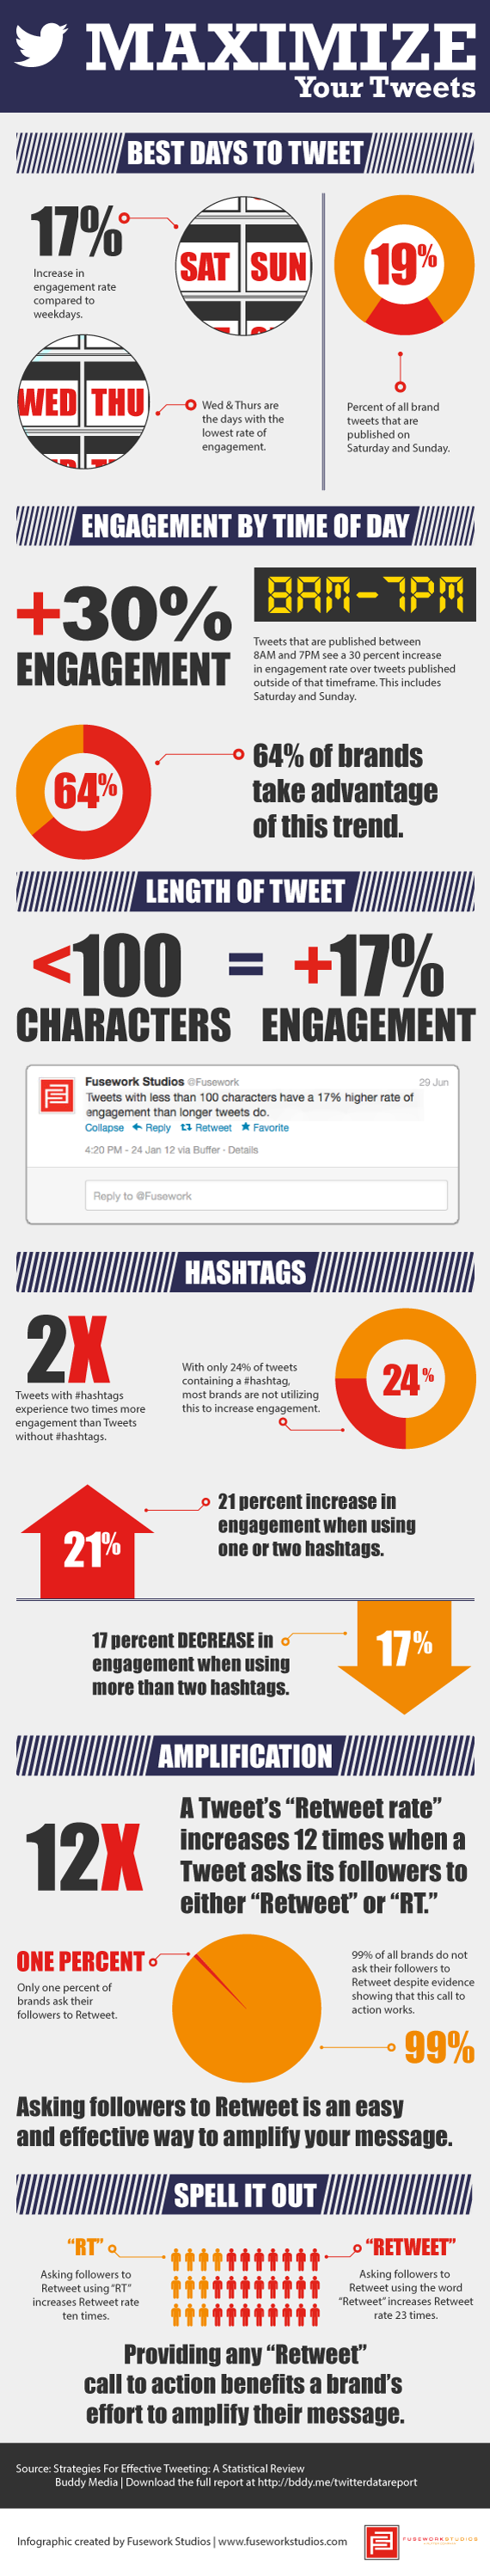 A guide to more effective tweeting, thanks to Buddy Media and Fusework Studios.